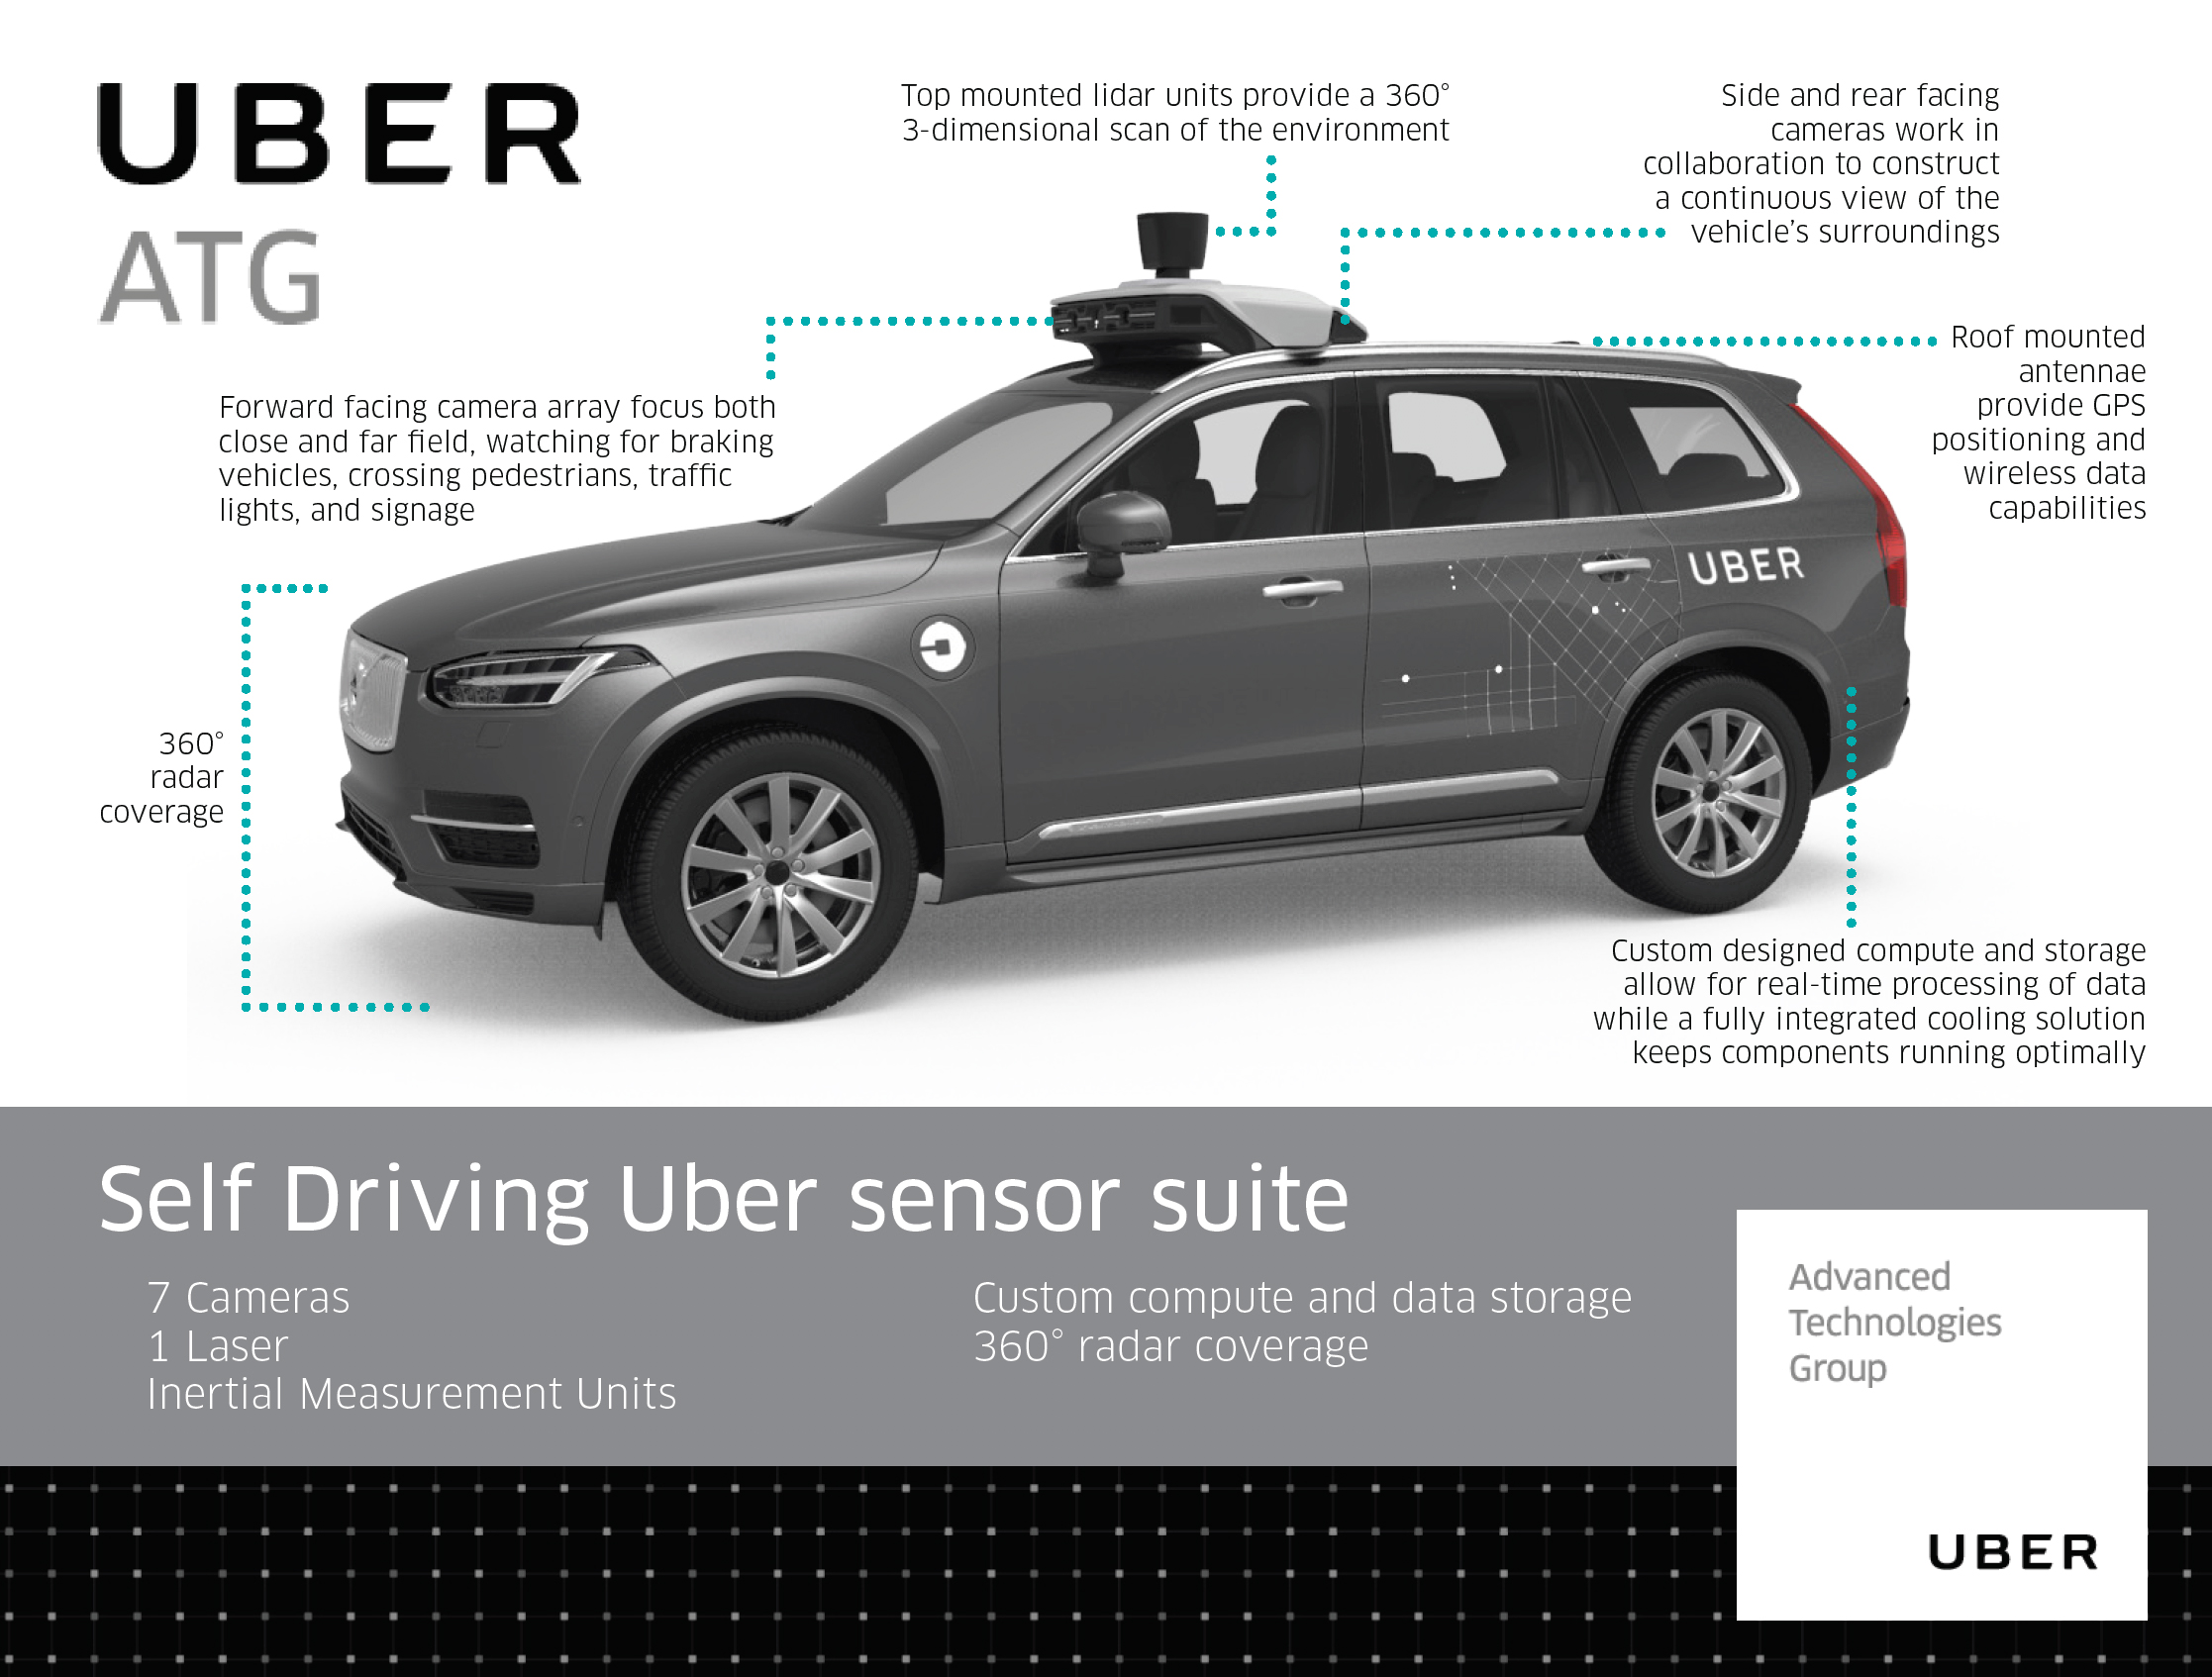 Here's how Uber's self-driving cars are supposed to detect pedestrians